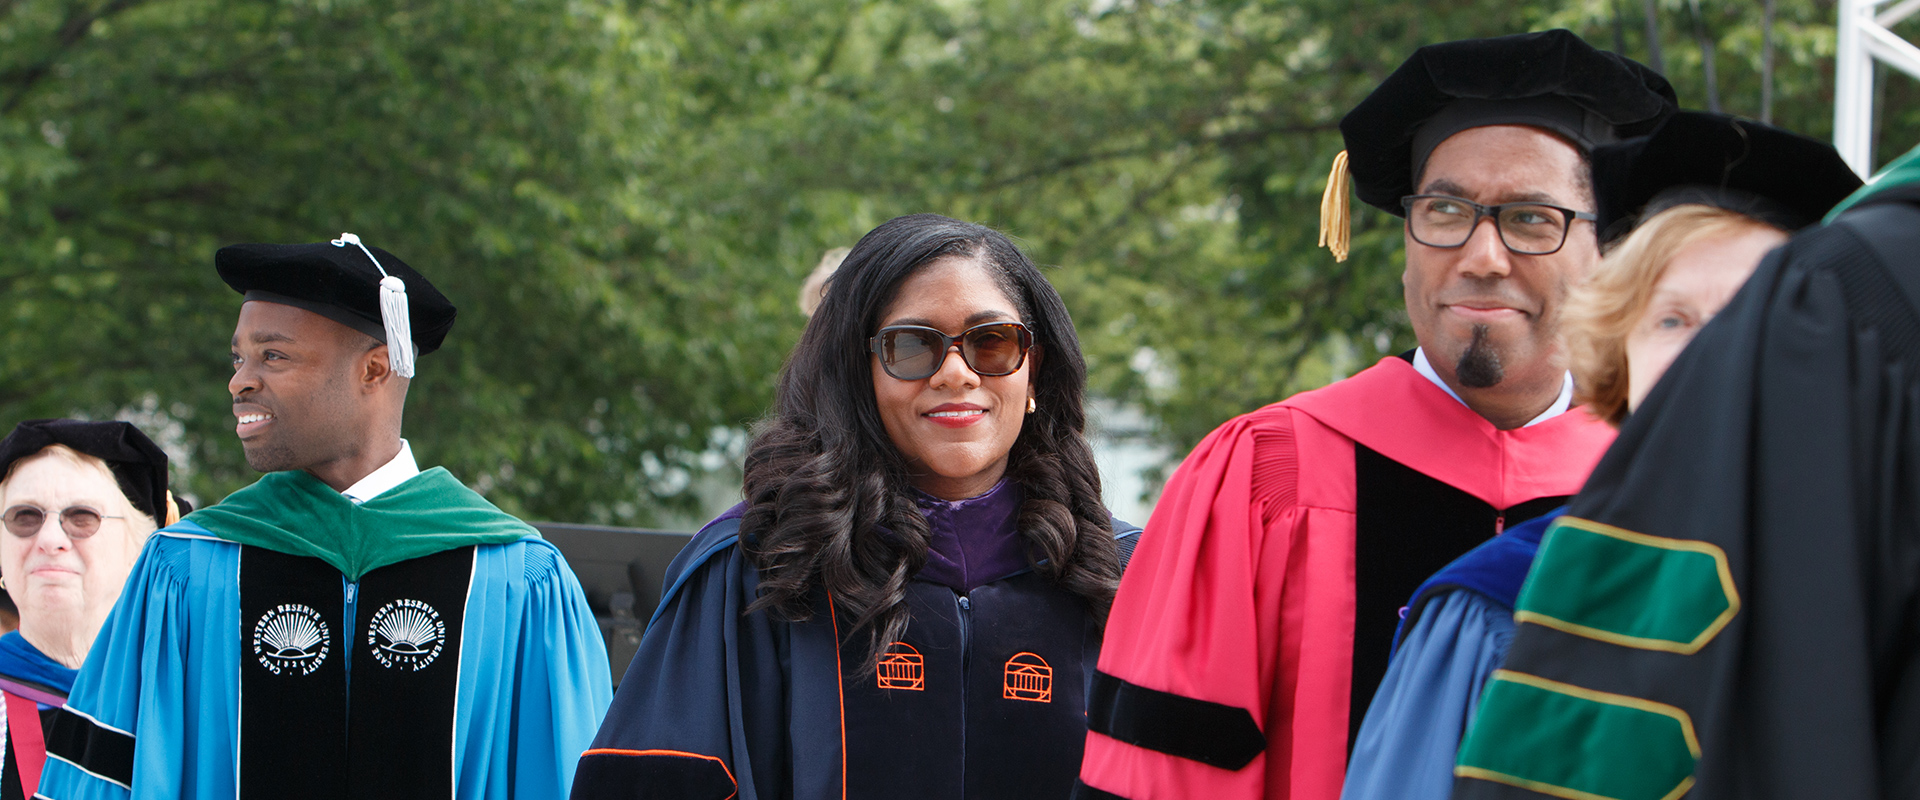 GW staff in academic dress during 2018 Commencement ceremony